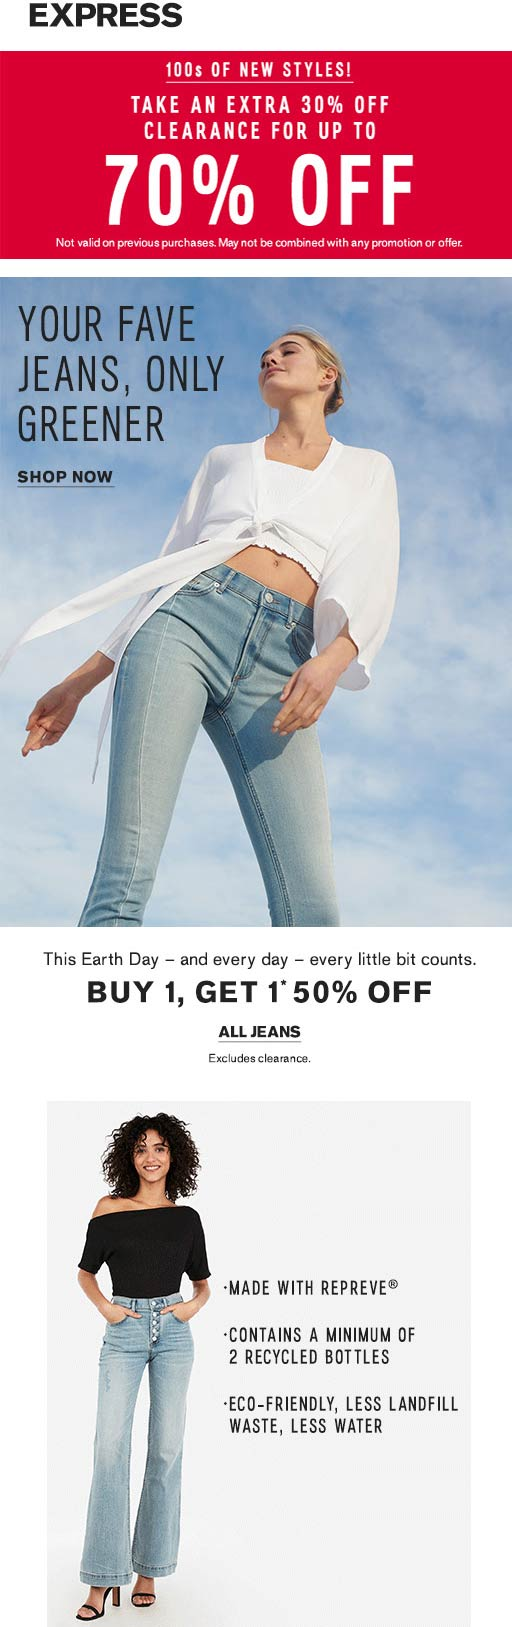 Express Coupon September 2019 Extra 30% off clearance & more at Express, ditto online